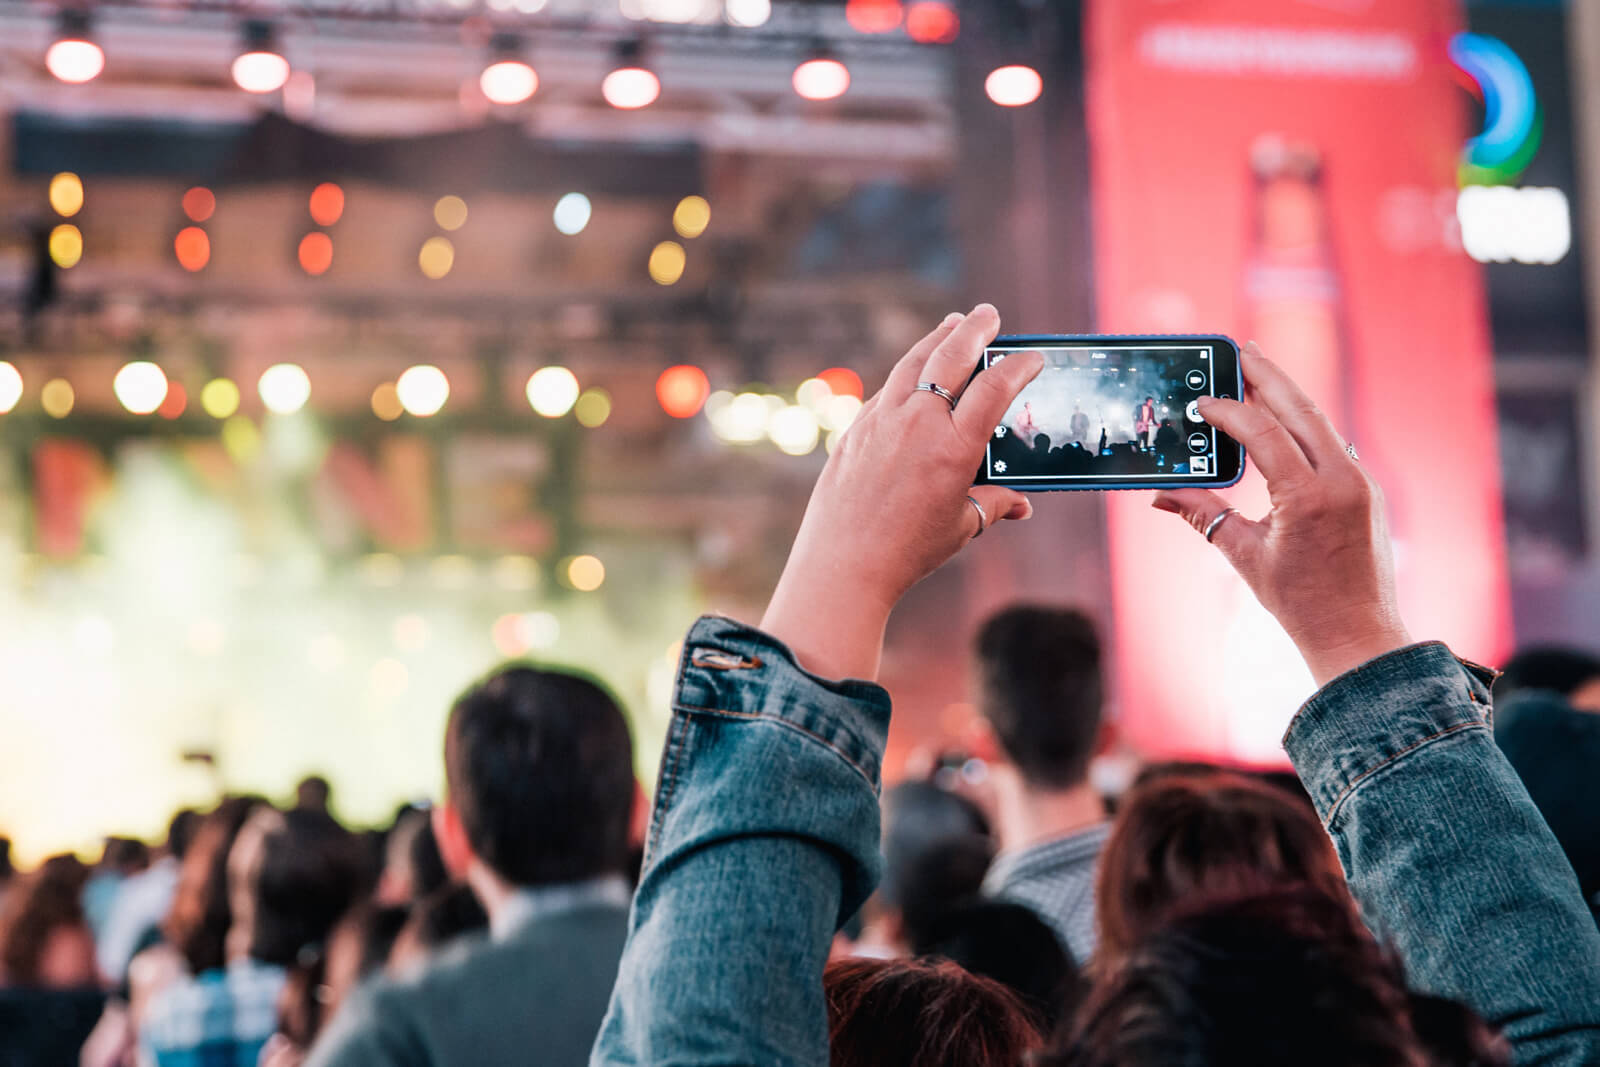 Glastonbury & EE to improve connectivity using a WiFi network powered by 5G